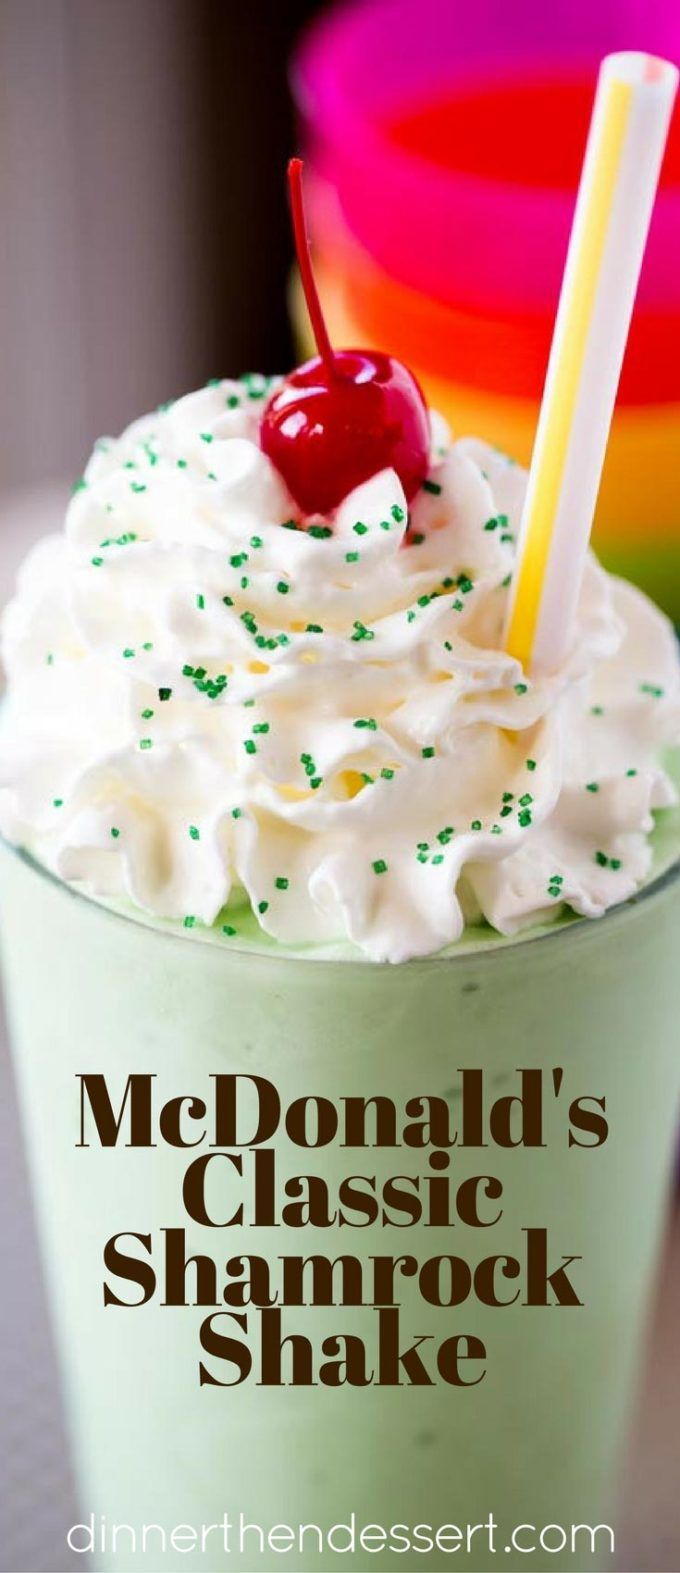 McDonald's Shamrock Shake is the homemade version of the classic St. Patrick's day treat made with vanilla ice cream, mint extract, whipped cream and a cherry. Less expensive and healthier (minus the green coloring!).